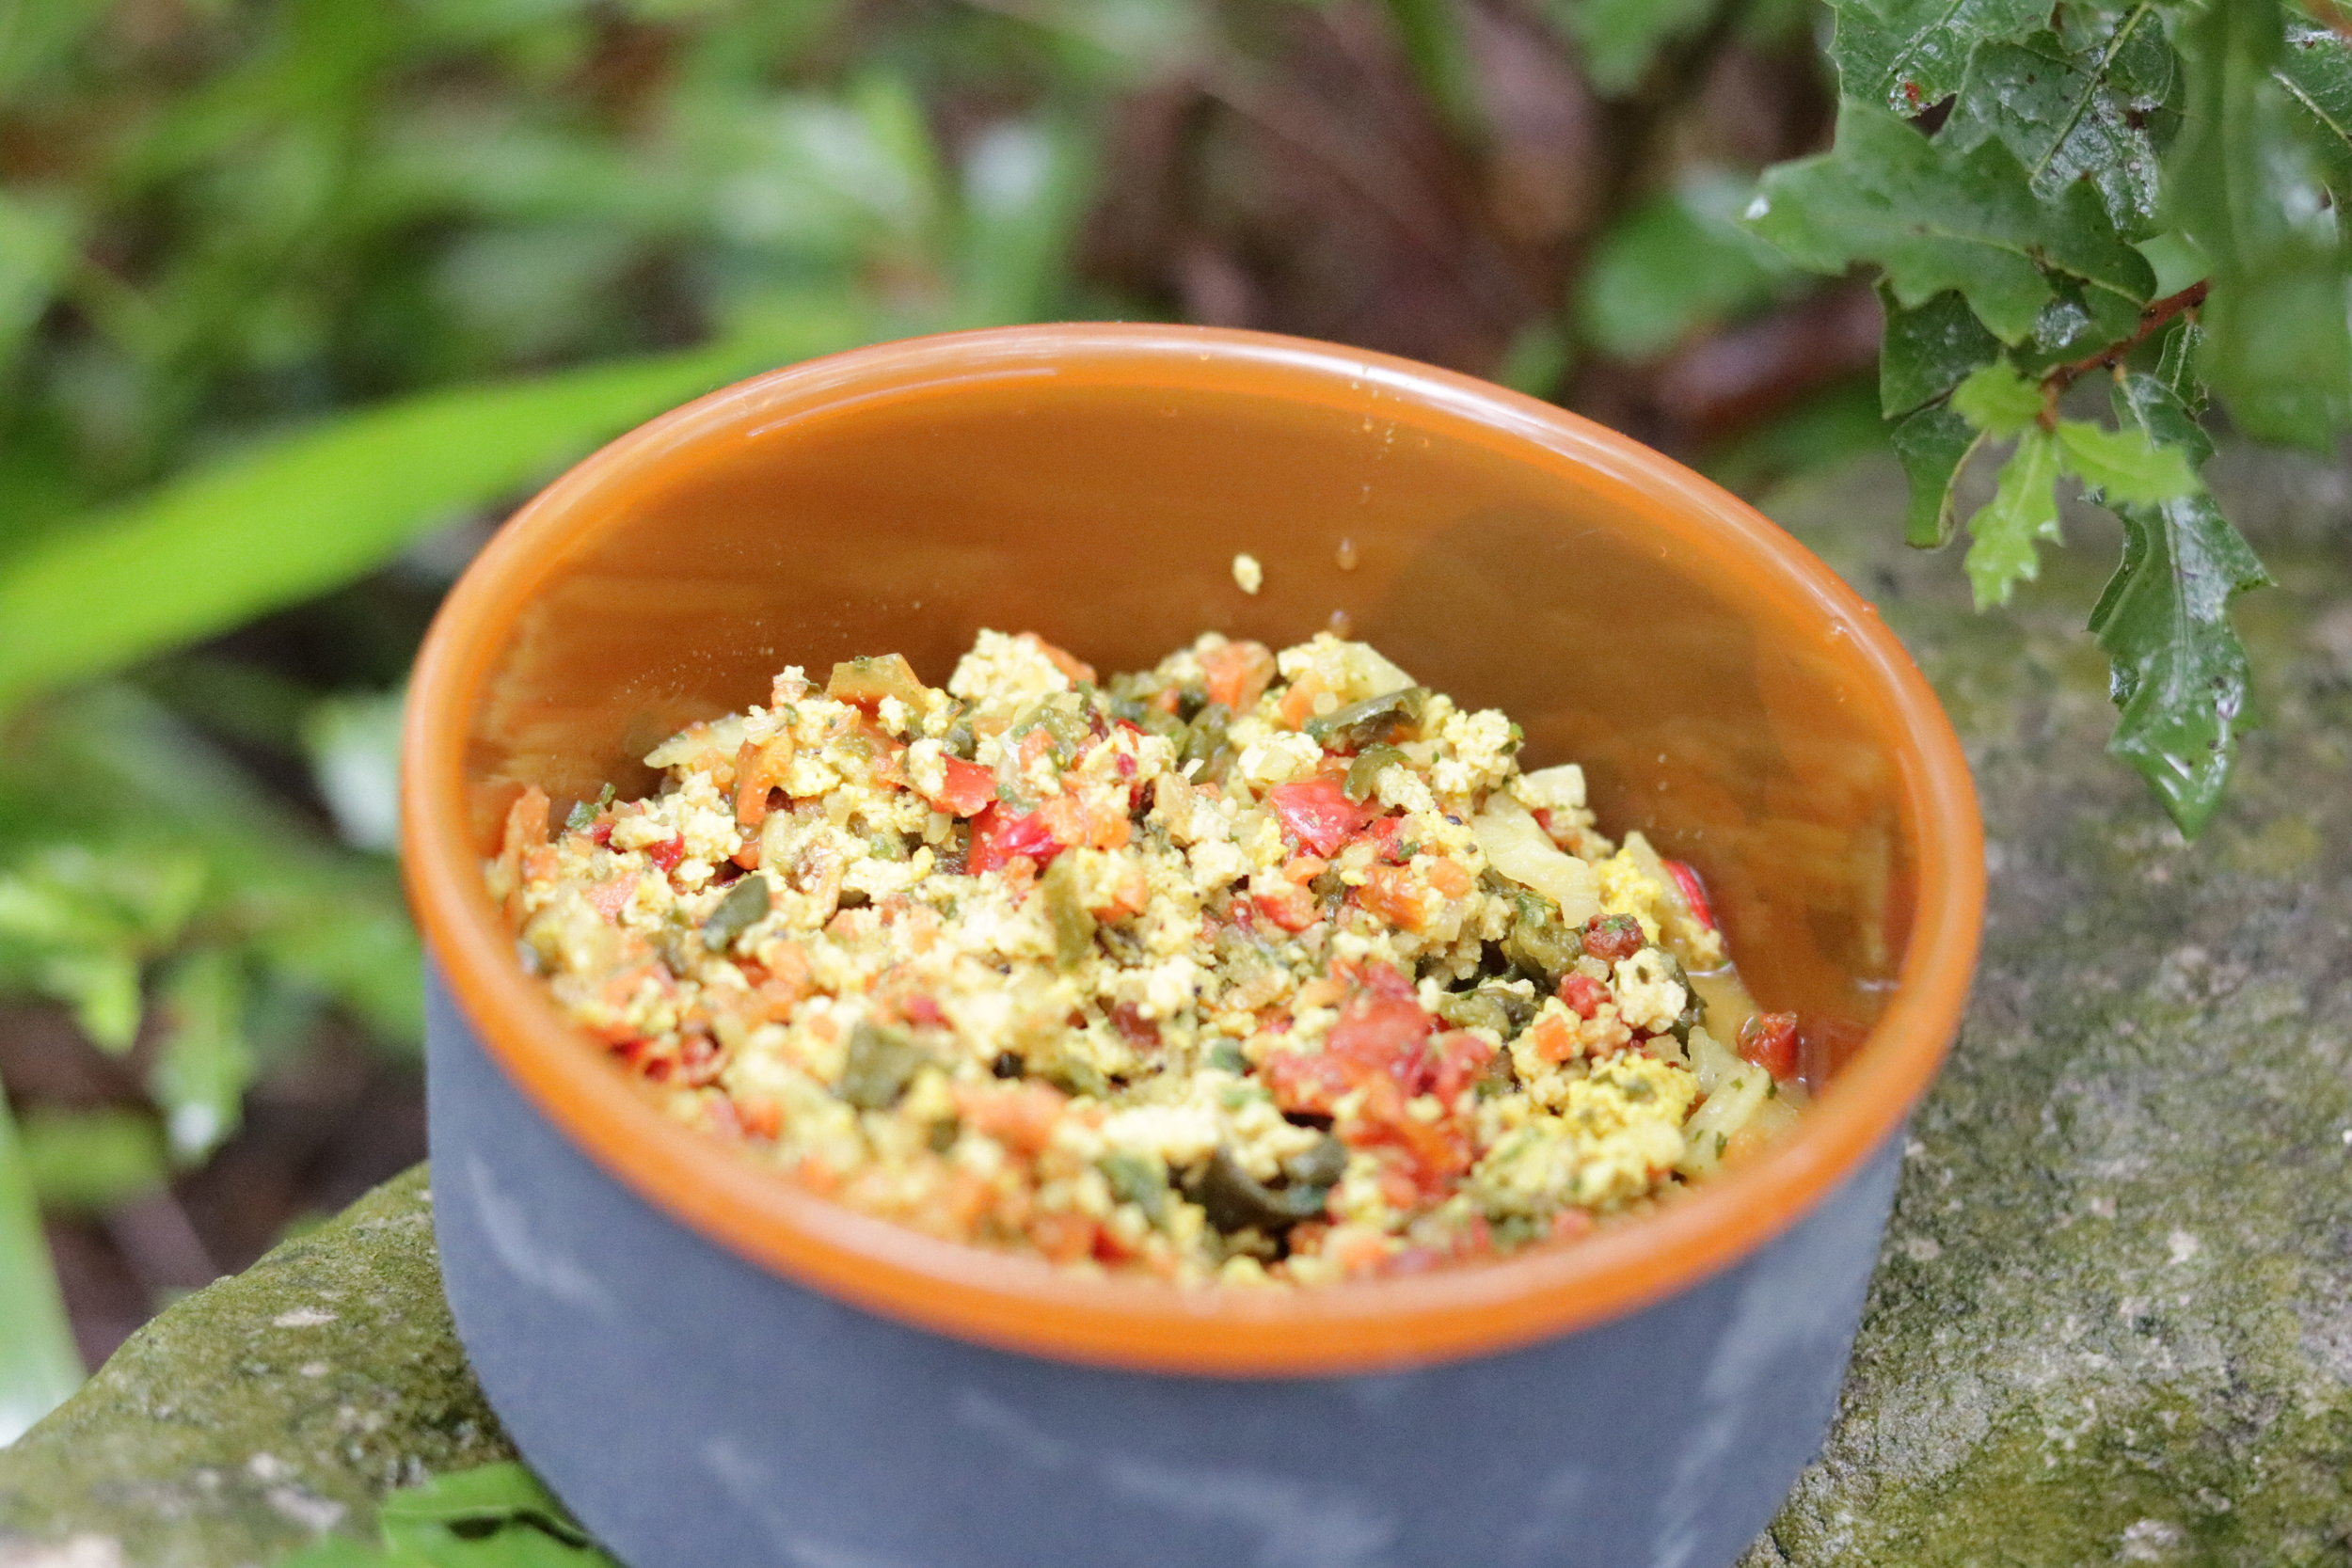 Dehydrated tofu scramble from Outdoor Herbivore